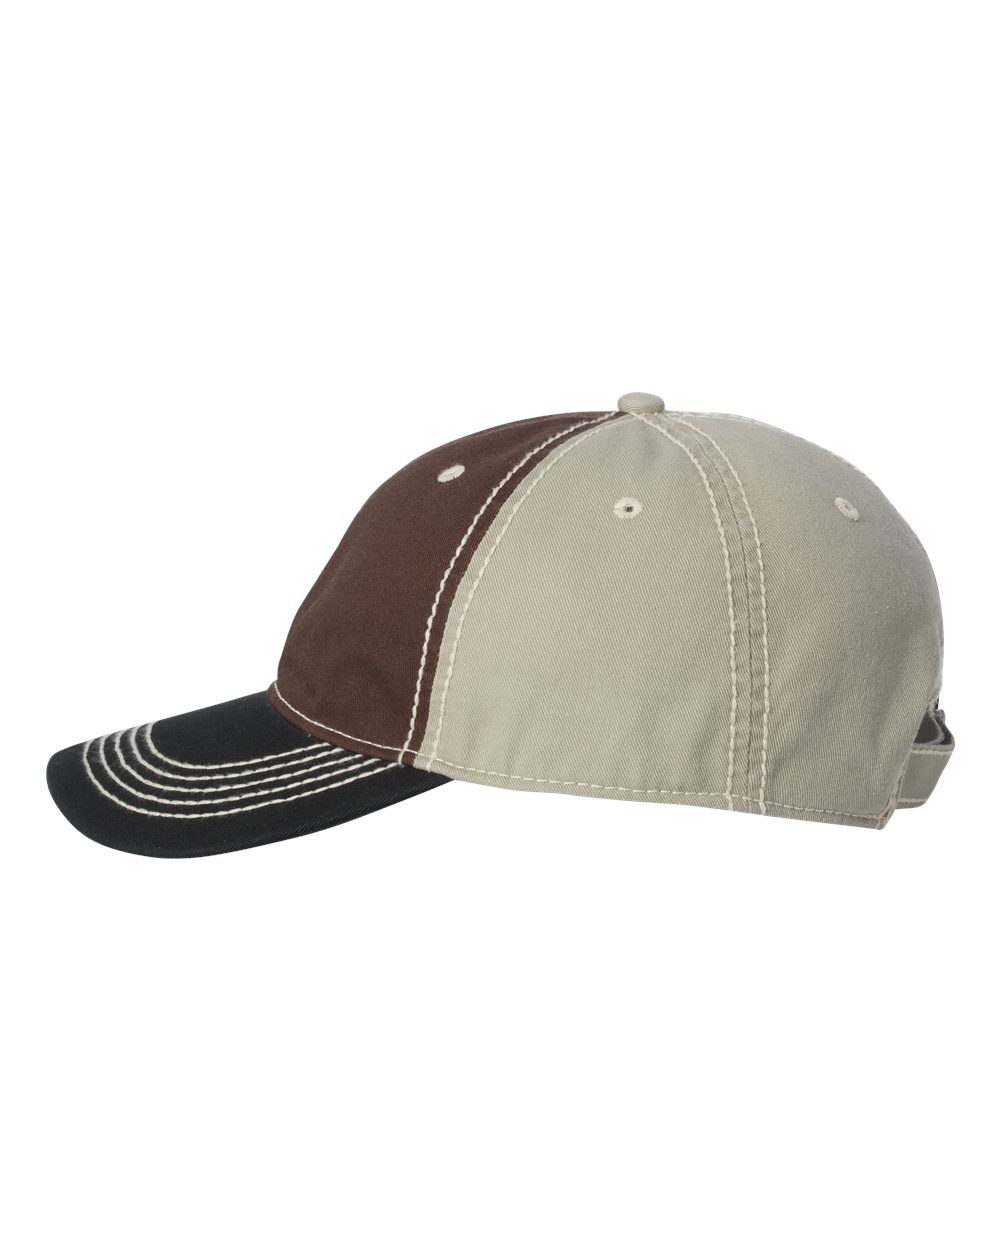 Outdoor Cap TPS300 - Washed Chino Cap with Contrast Stitching